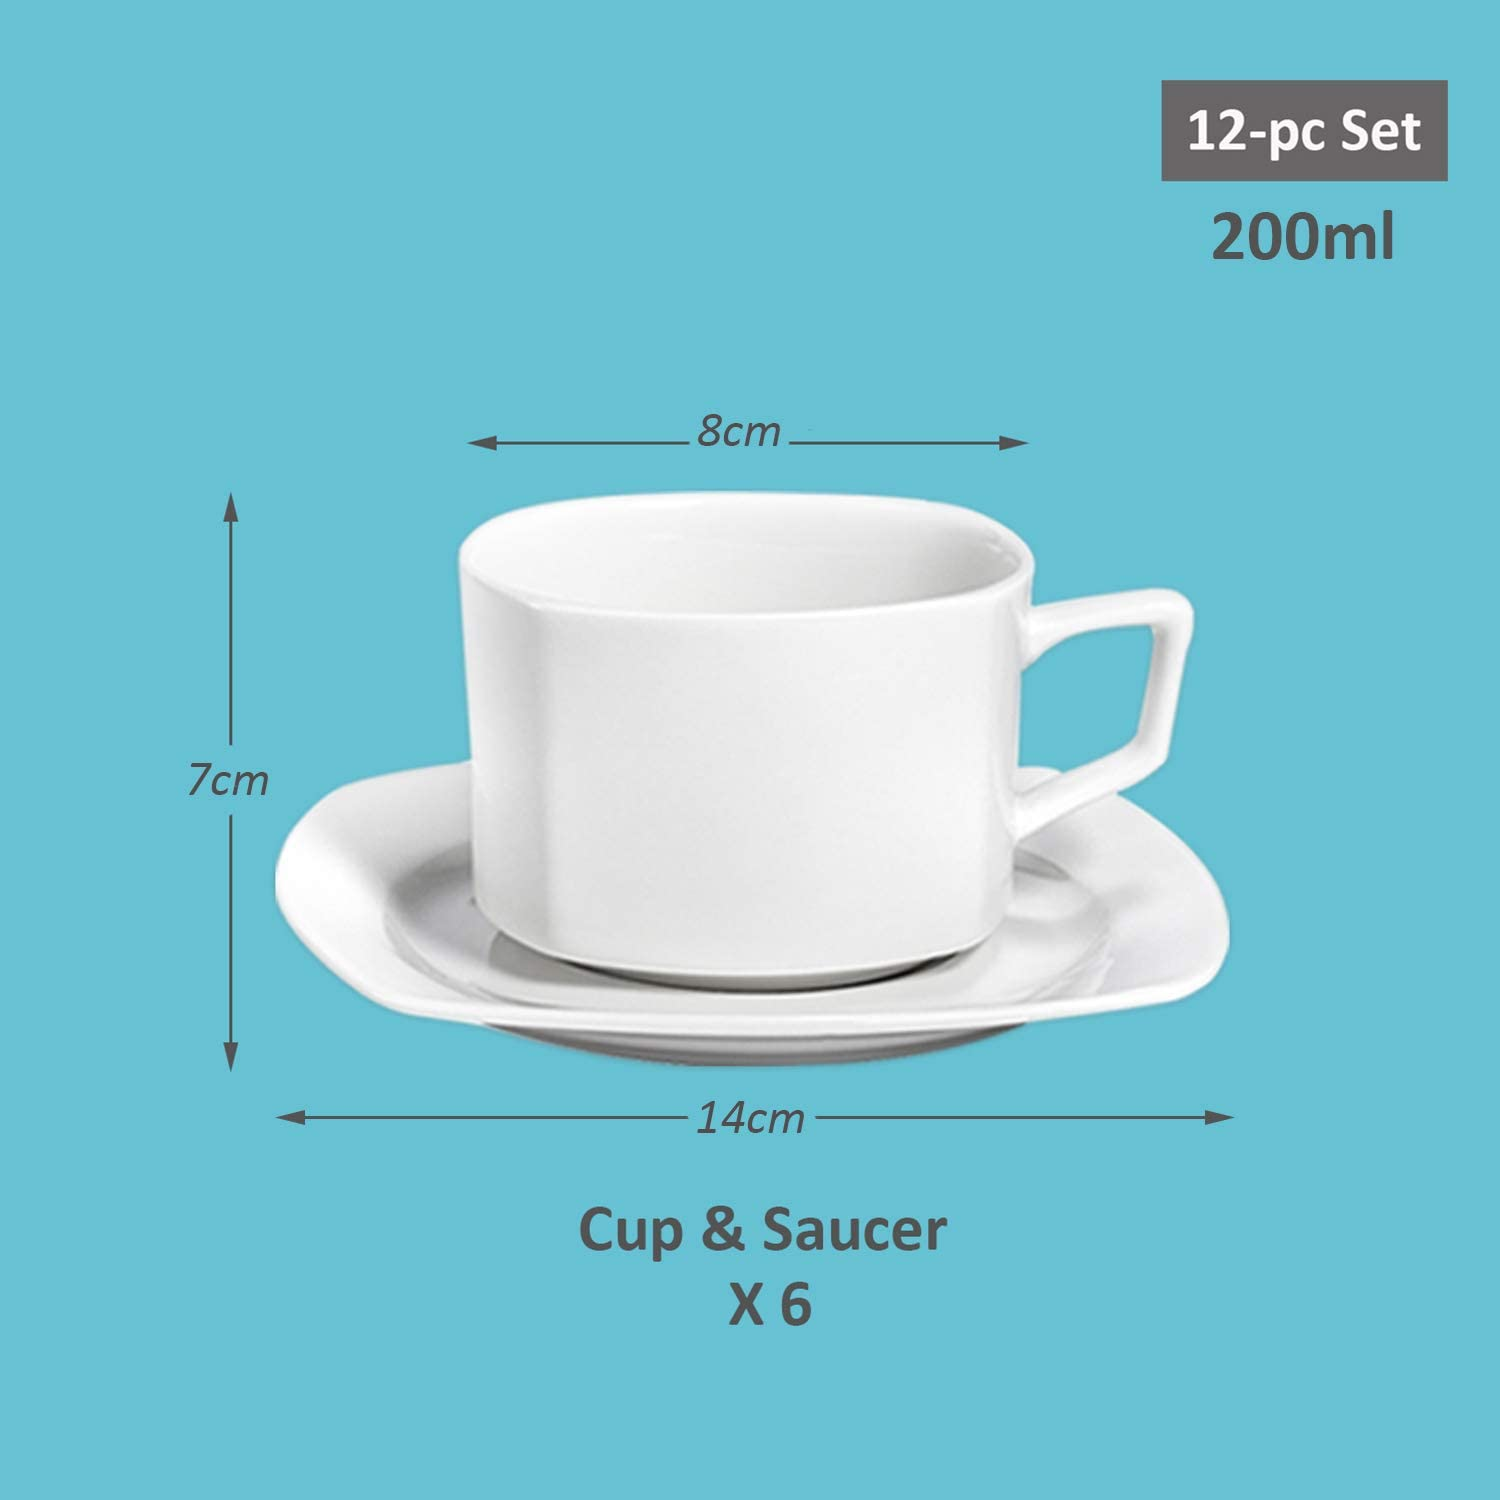 SUNTING 18-Piece Coffee Sets Porcelain Cream White Afternoon Tea Sets New Bone China Square Tableware Set with 6 Side Plates 6 Espresso Coffee Cups//Mugs 200ml and 6 Saucers